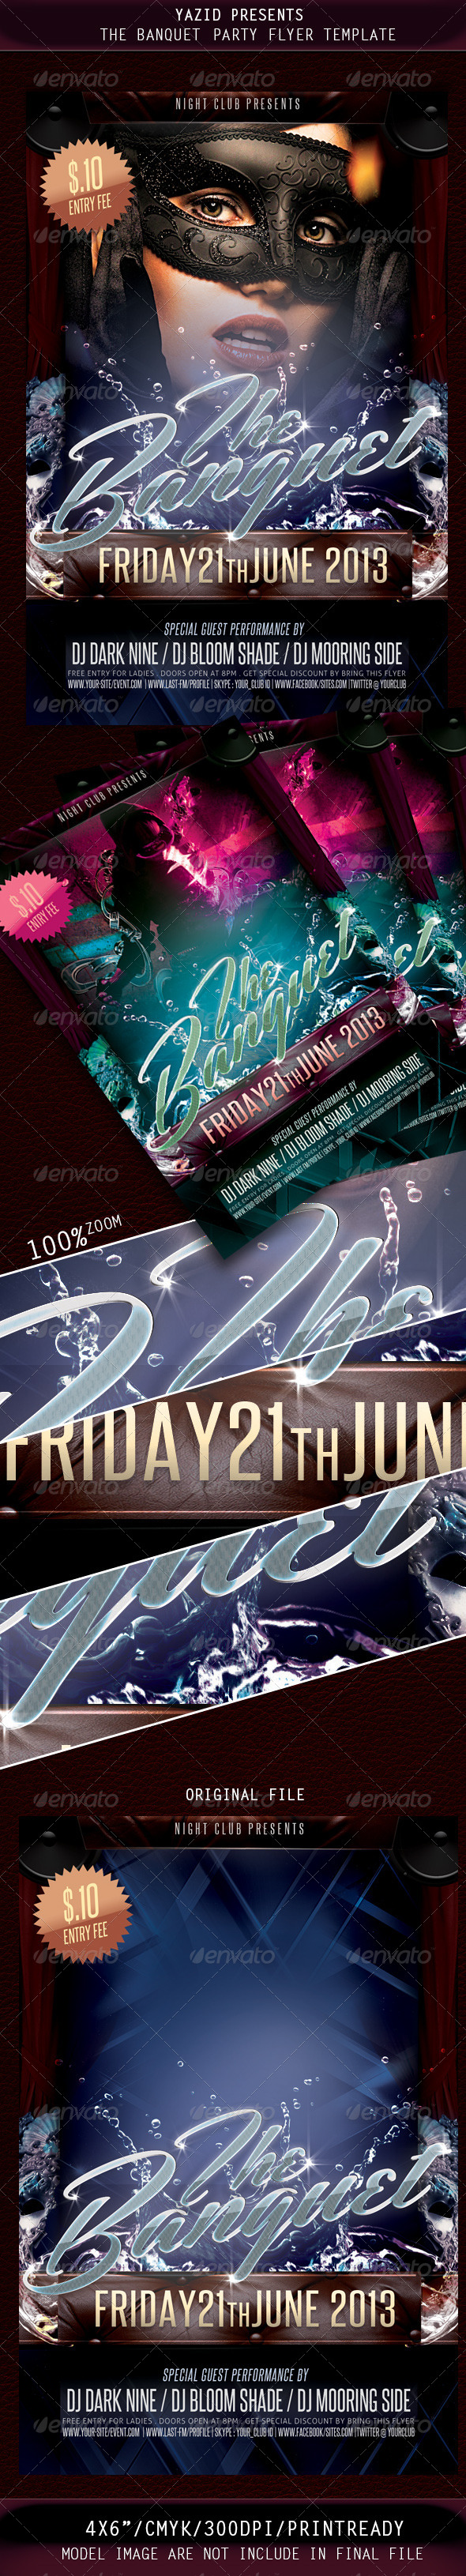 GraphicRiver The Banquet Party Flyer Template 4769333